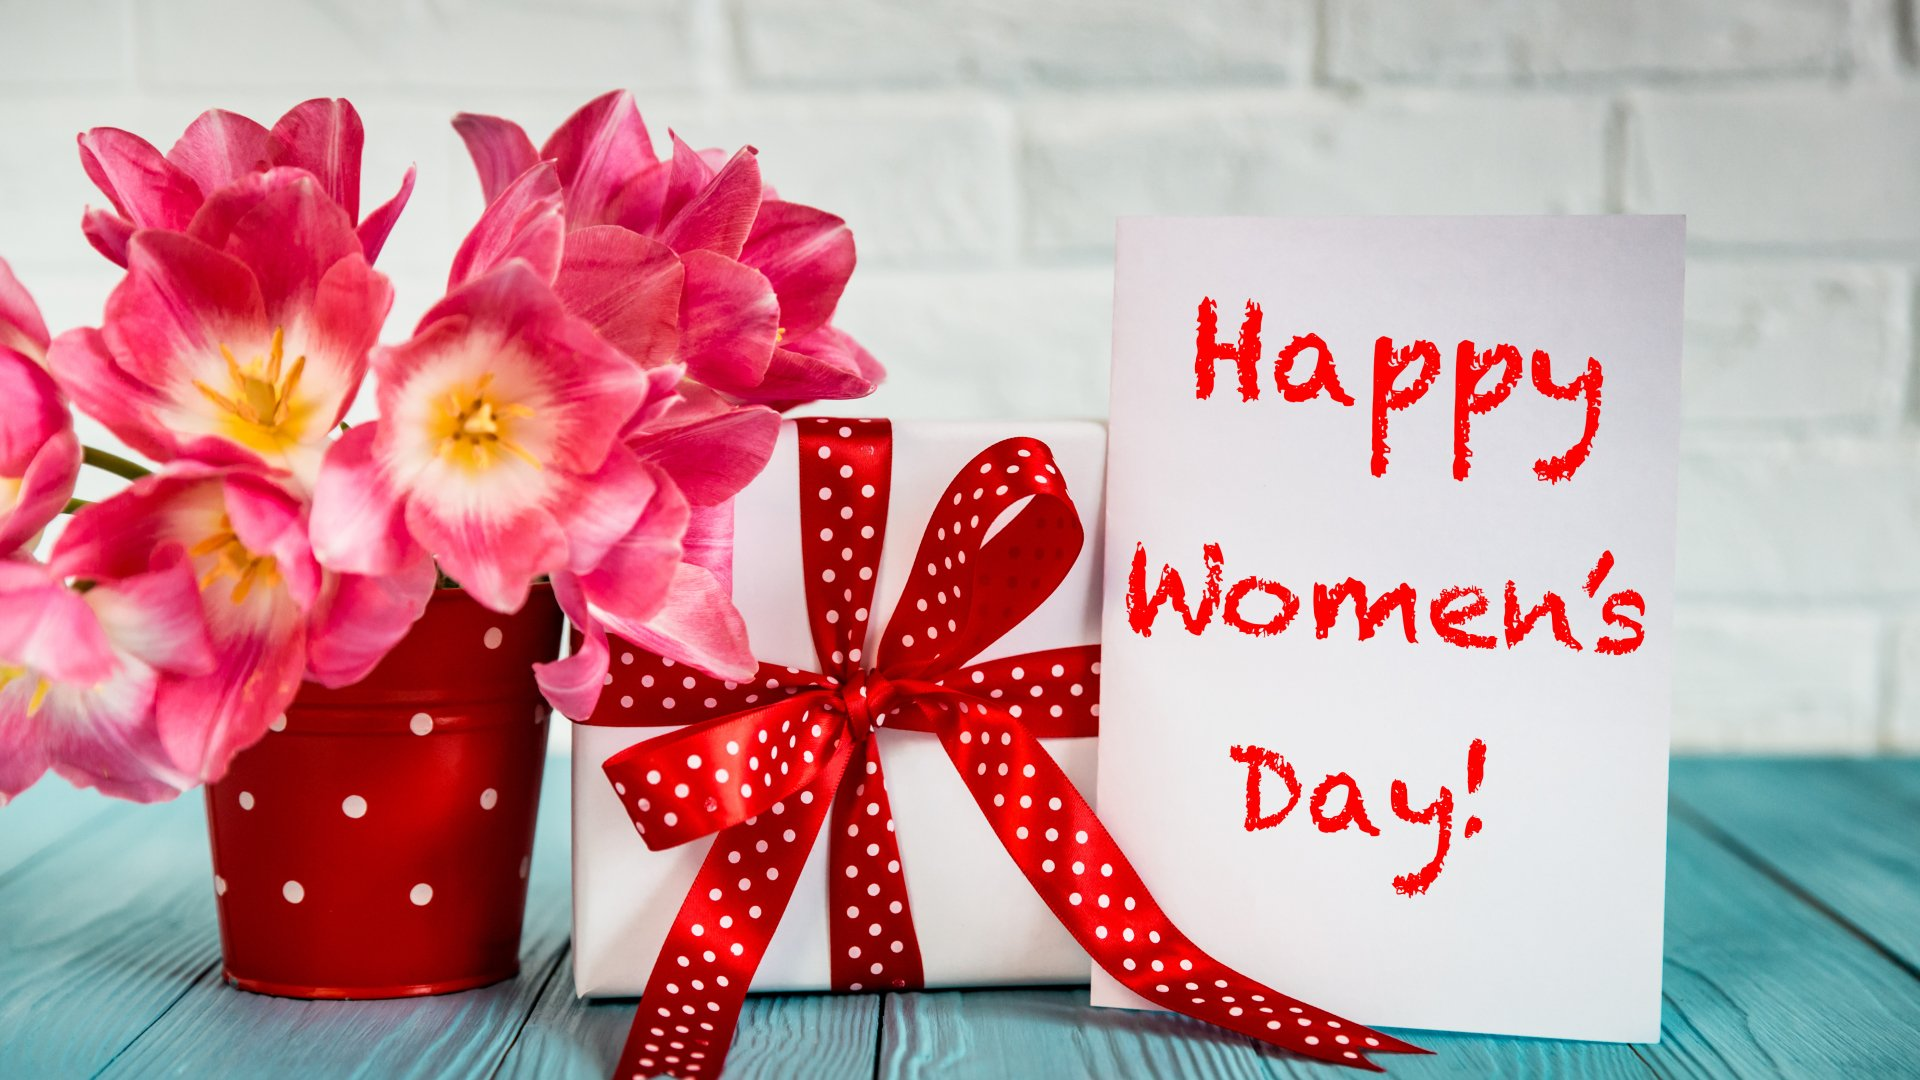 Happy Women S Day Wish Wallpaper Hd Dia Internacional Da Mulher